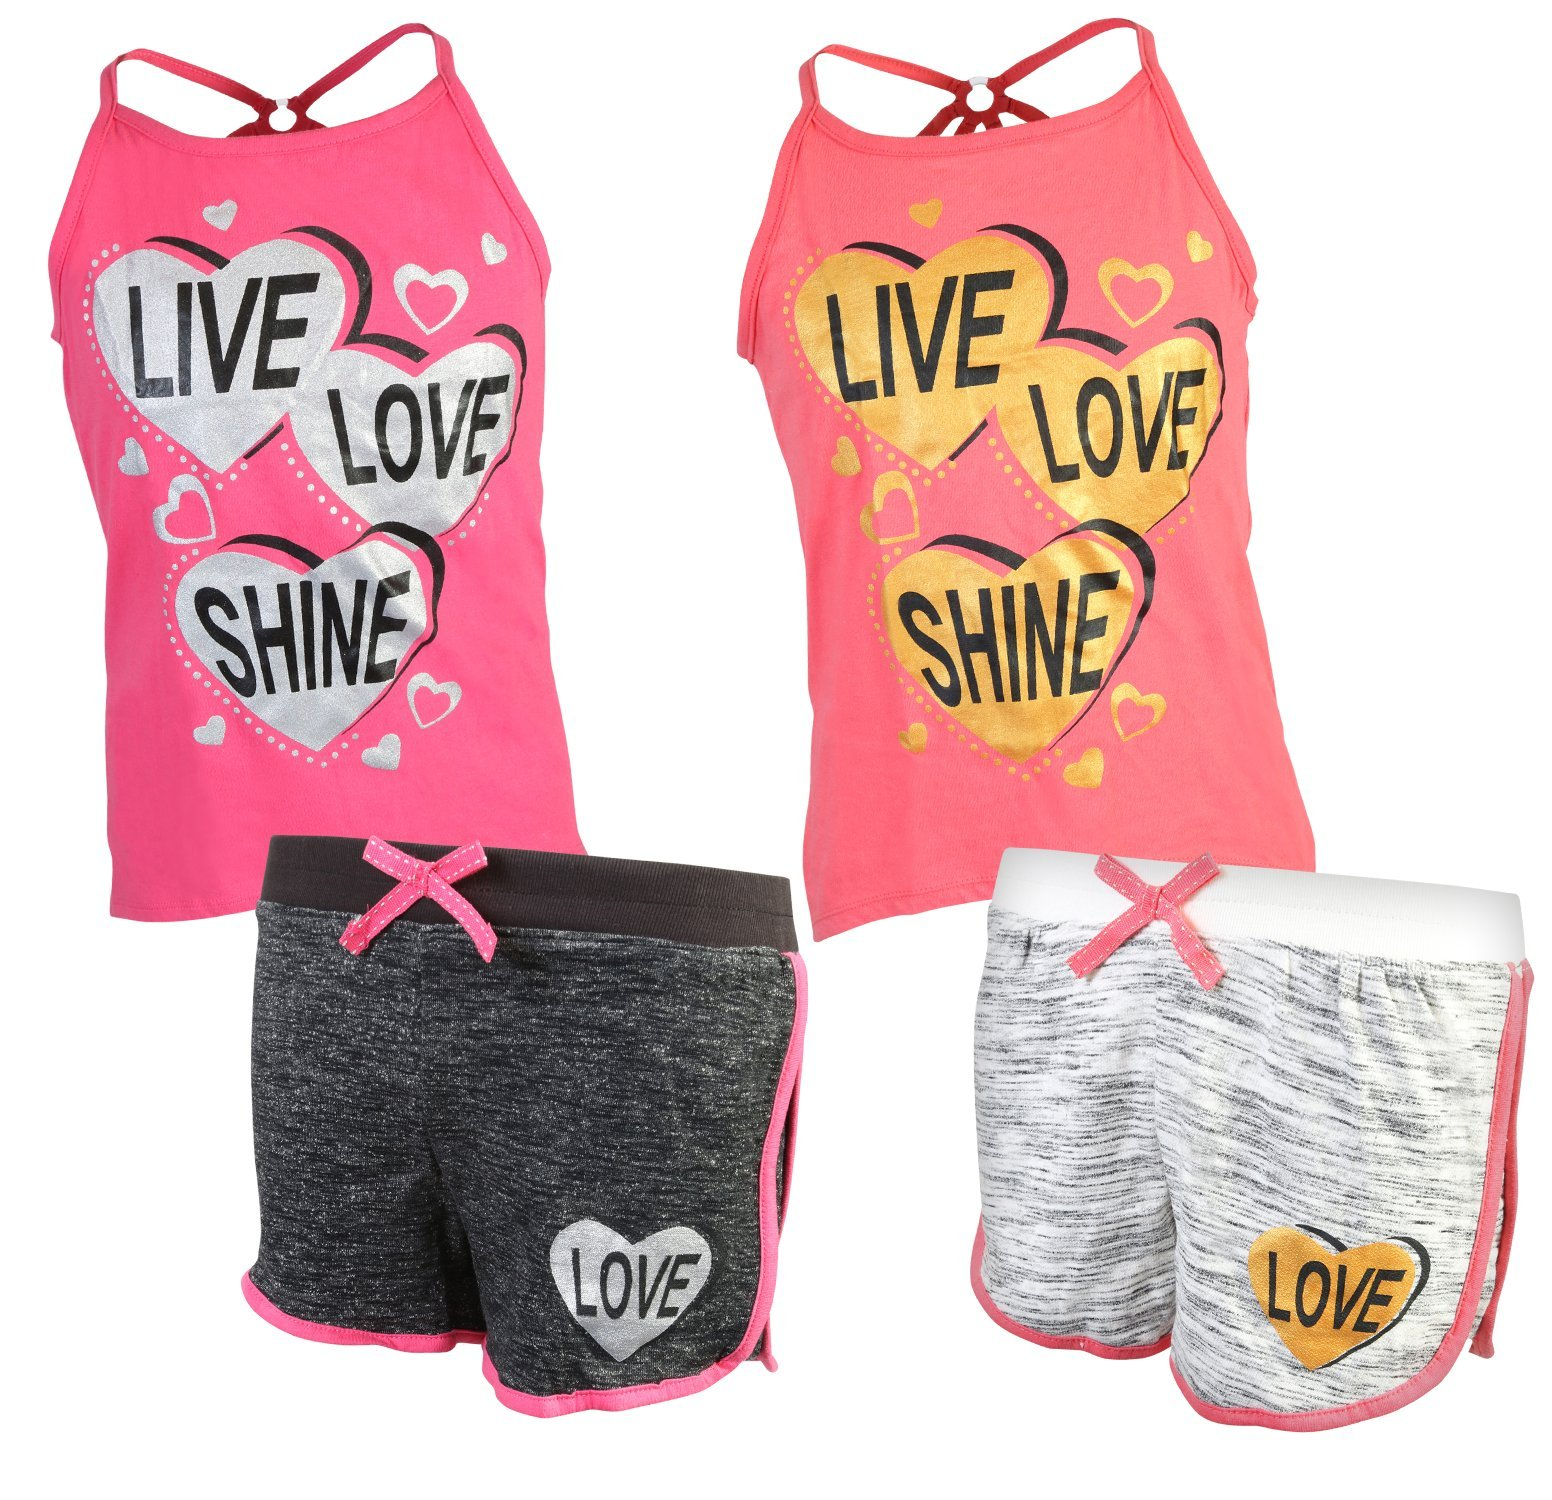 Real Love Girl's 4-Piece French Terry Short Sets, Live Love Shine, Size 5/6'